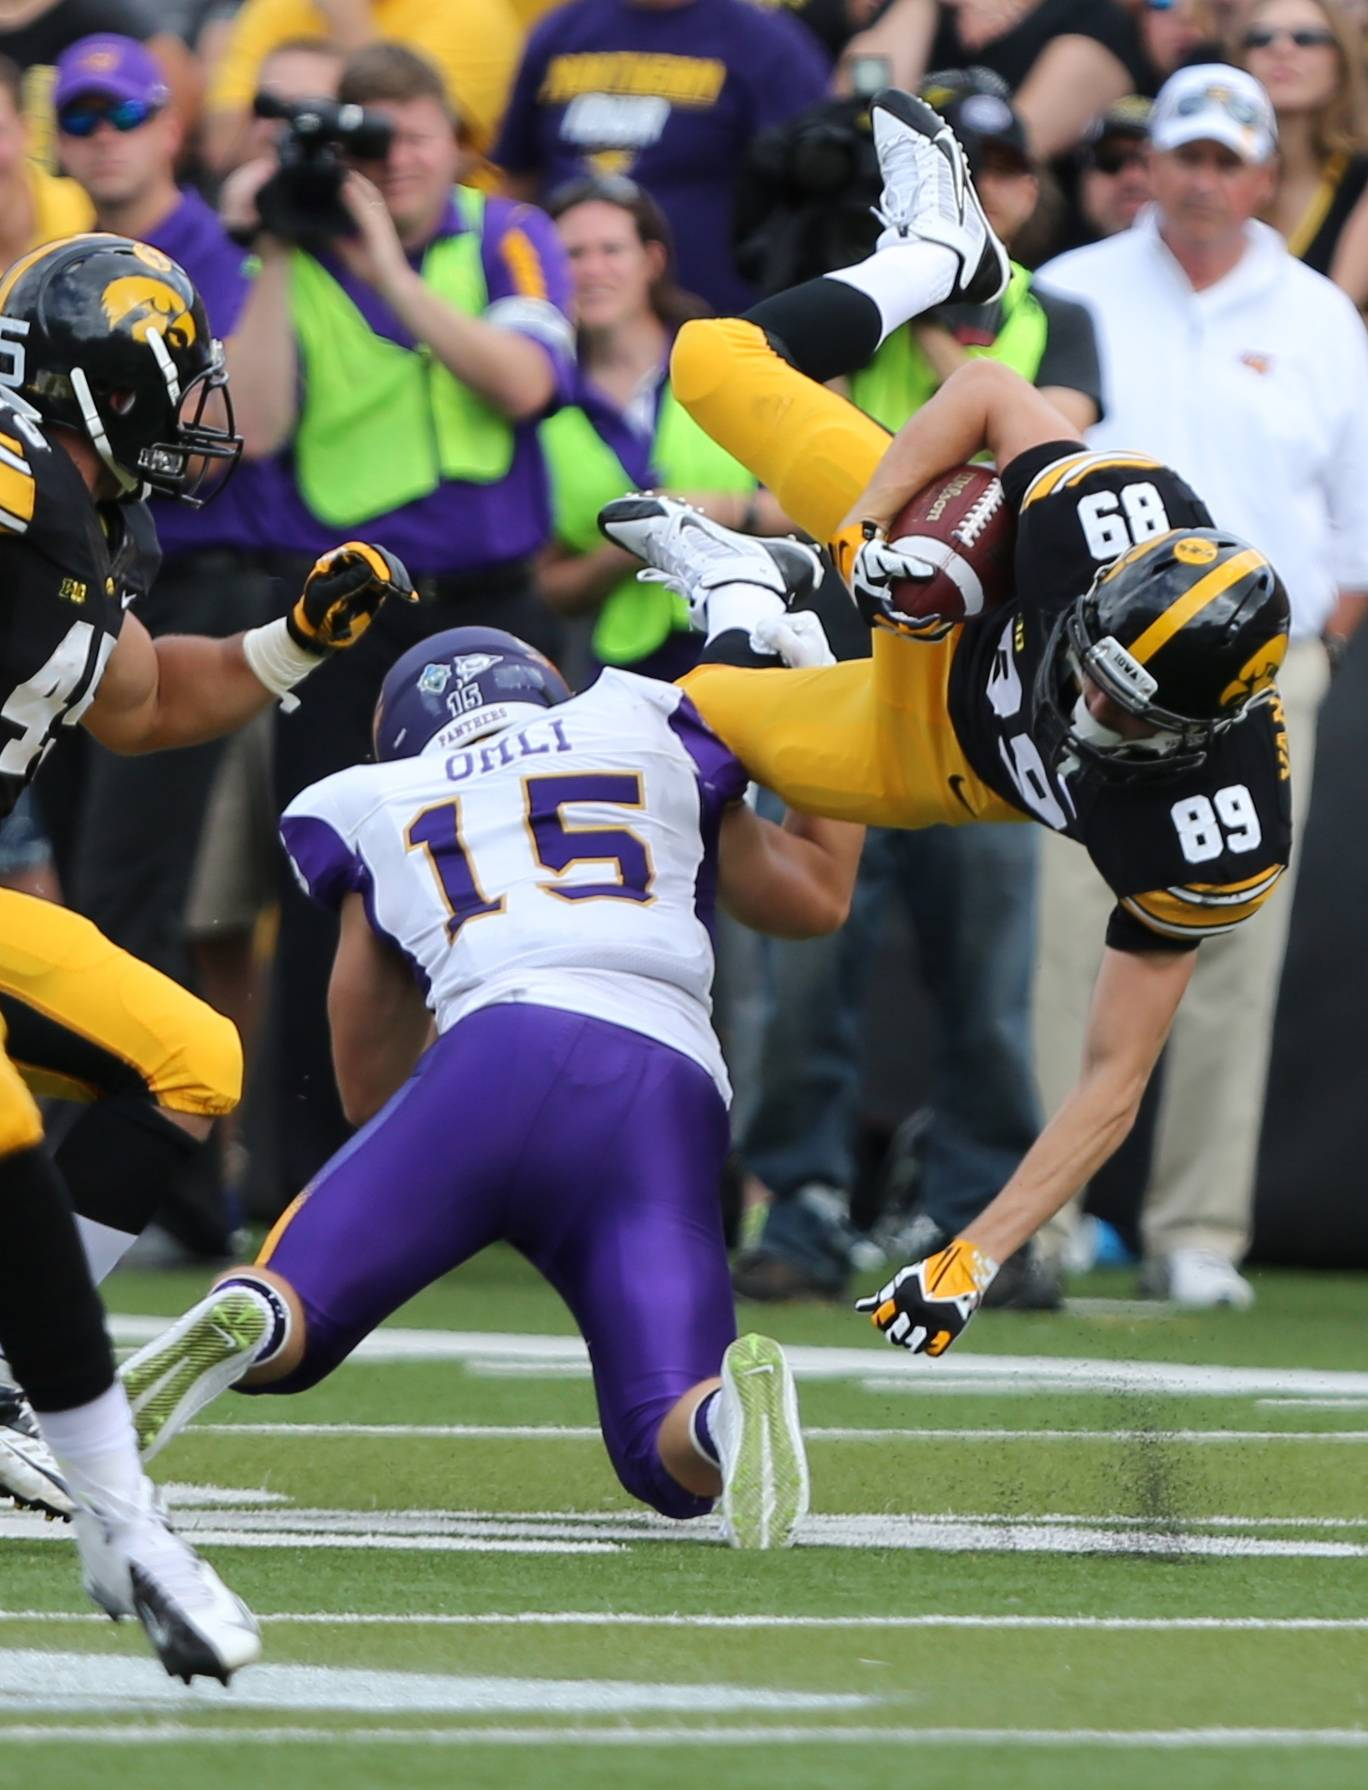 Iowa wide receiver Matt Vandeberg is upended by Northern Iowa defensive back Tate Omli on a kickoff return Saturday during the first half.